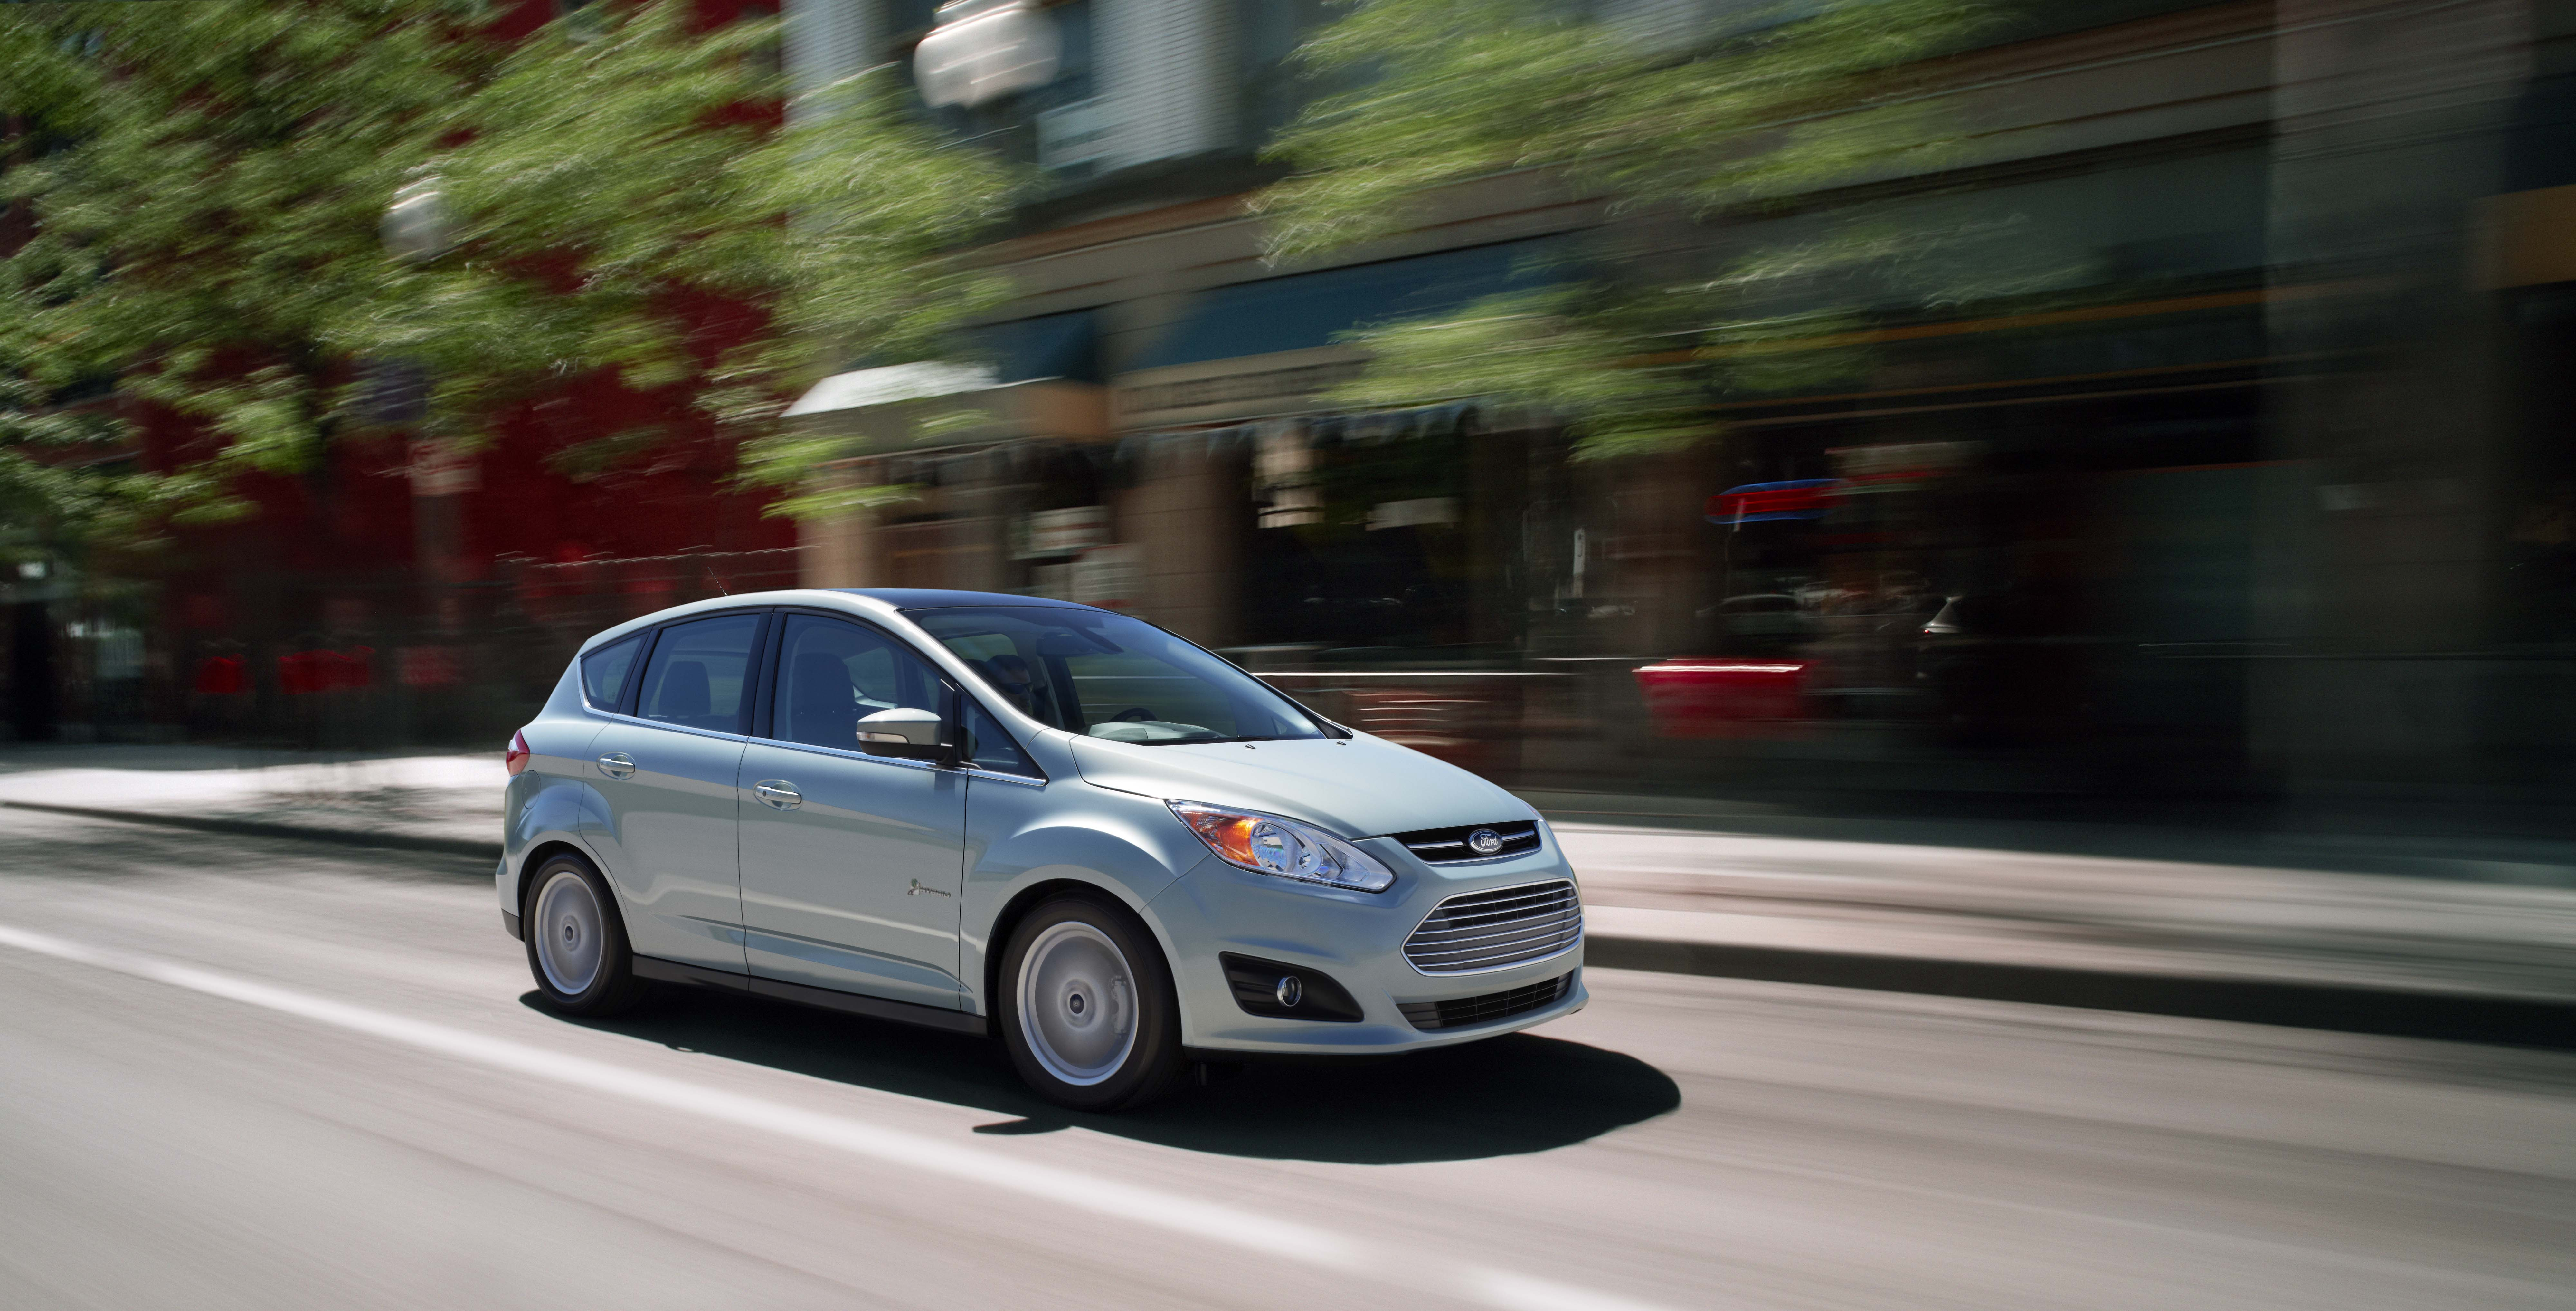 If You Own A 2017 Ford C Max Hybrid May Soon Be Receiving Recall Notice The Blue Oval Is Recalling Certain Models Made Between January 19